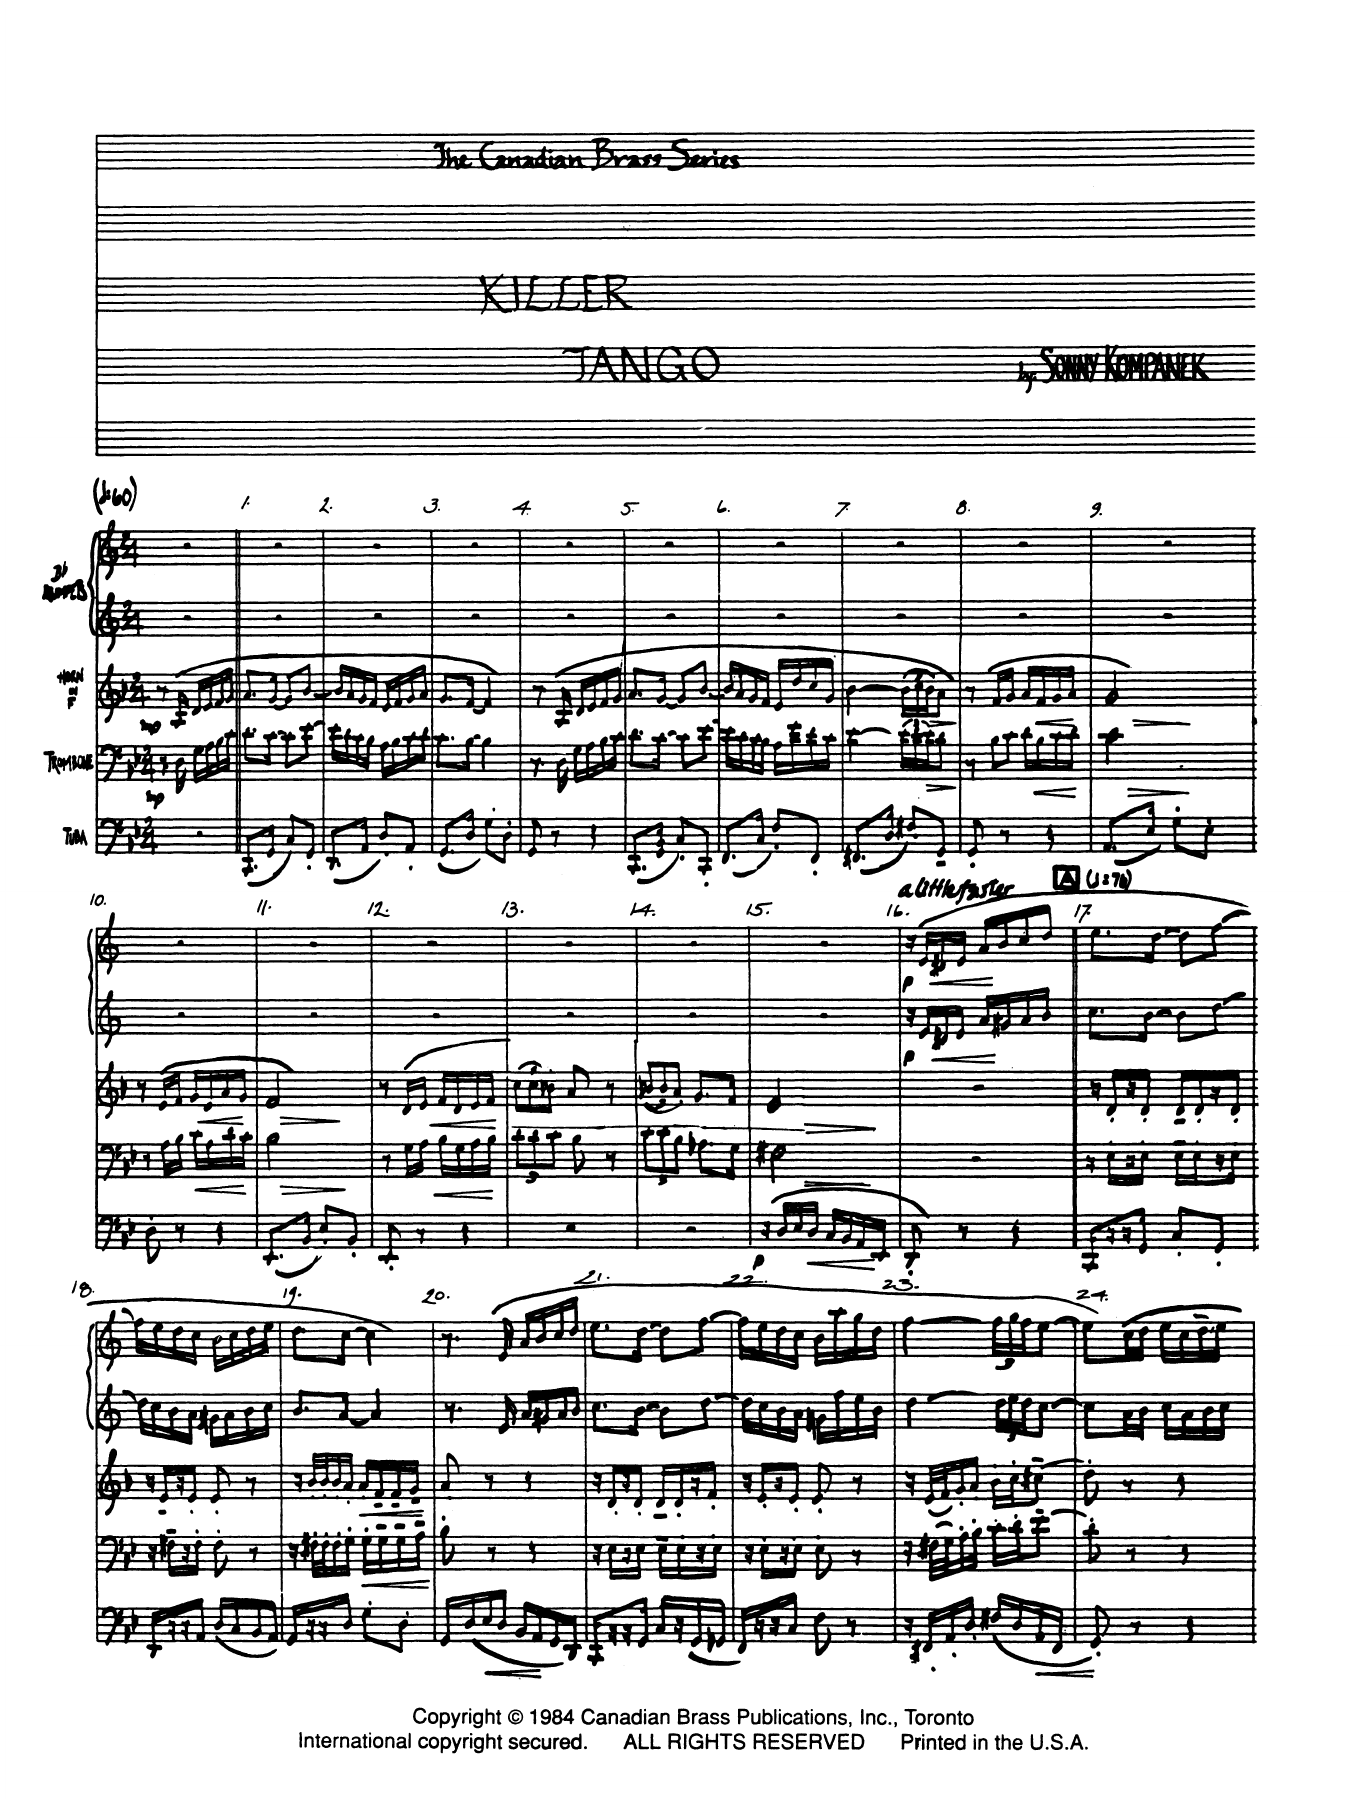 Killer Tango - Full Score Sheet Music